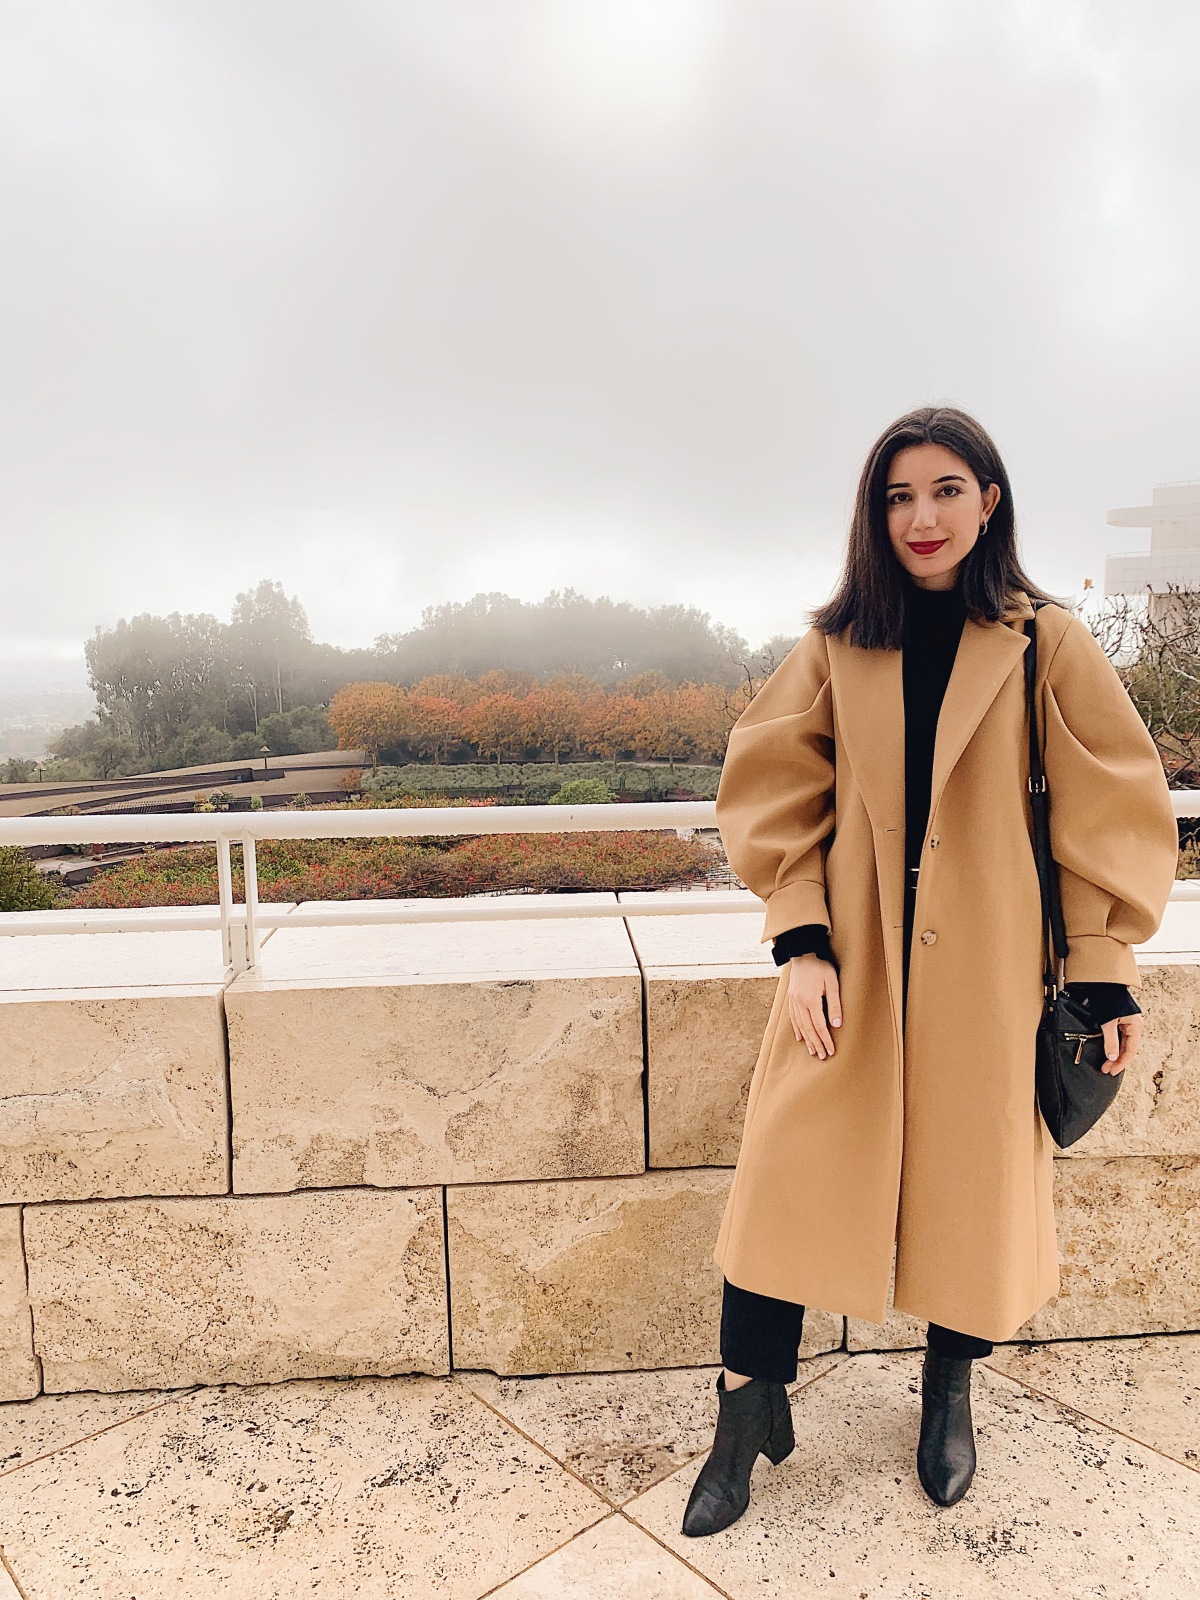 Storets, winter coat, winter wardrobe, outfit of the day, trench coat, lookbook, fashion blogger, LA blogger, lifestyle blogger, Getty Museum, storets coat, outerwear, red lips, Michael Kors, Zara, Audrey Hepburn